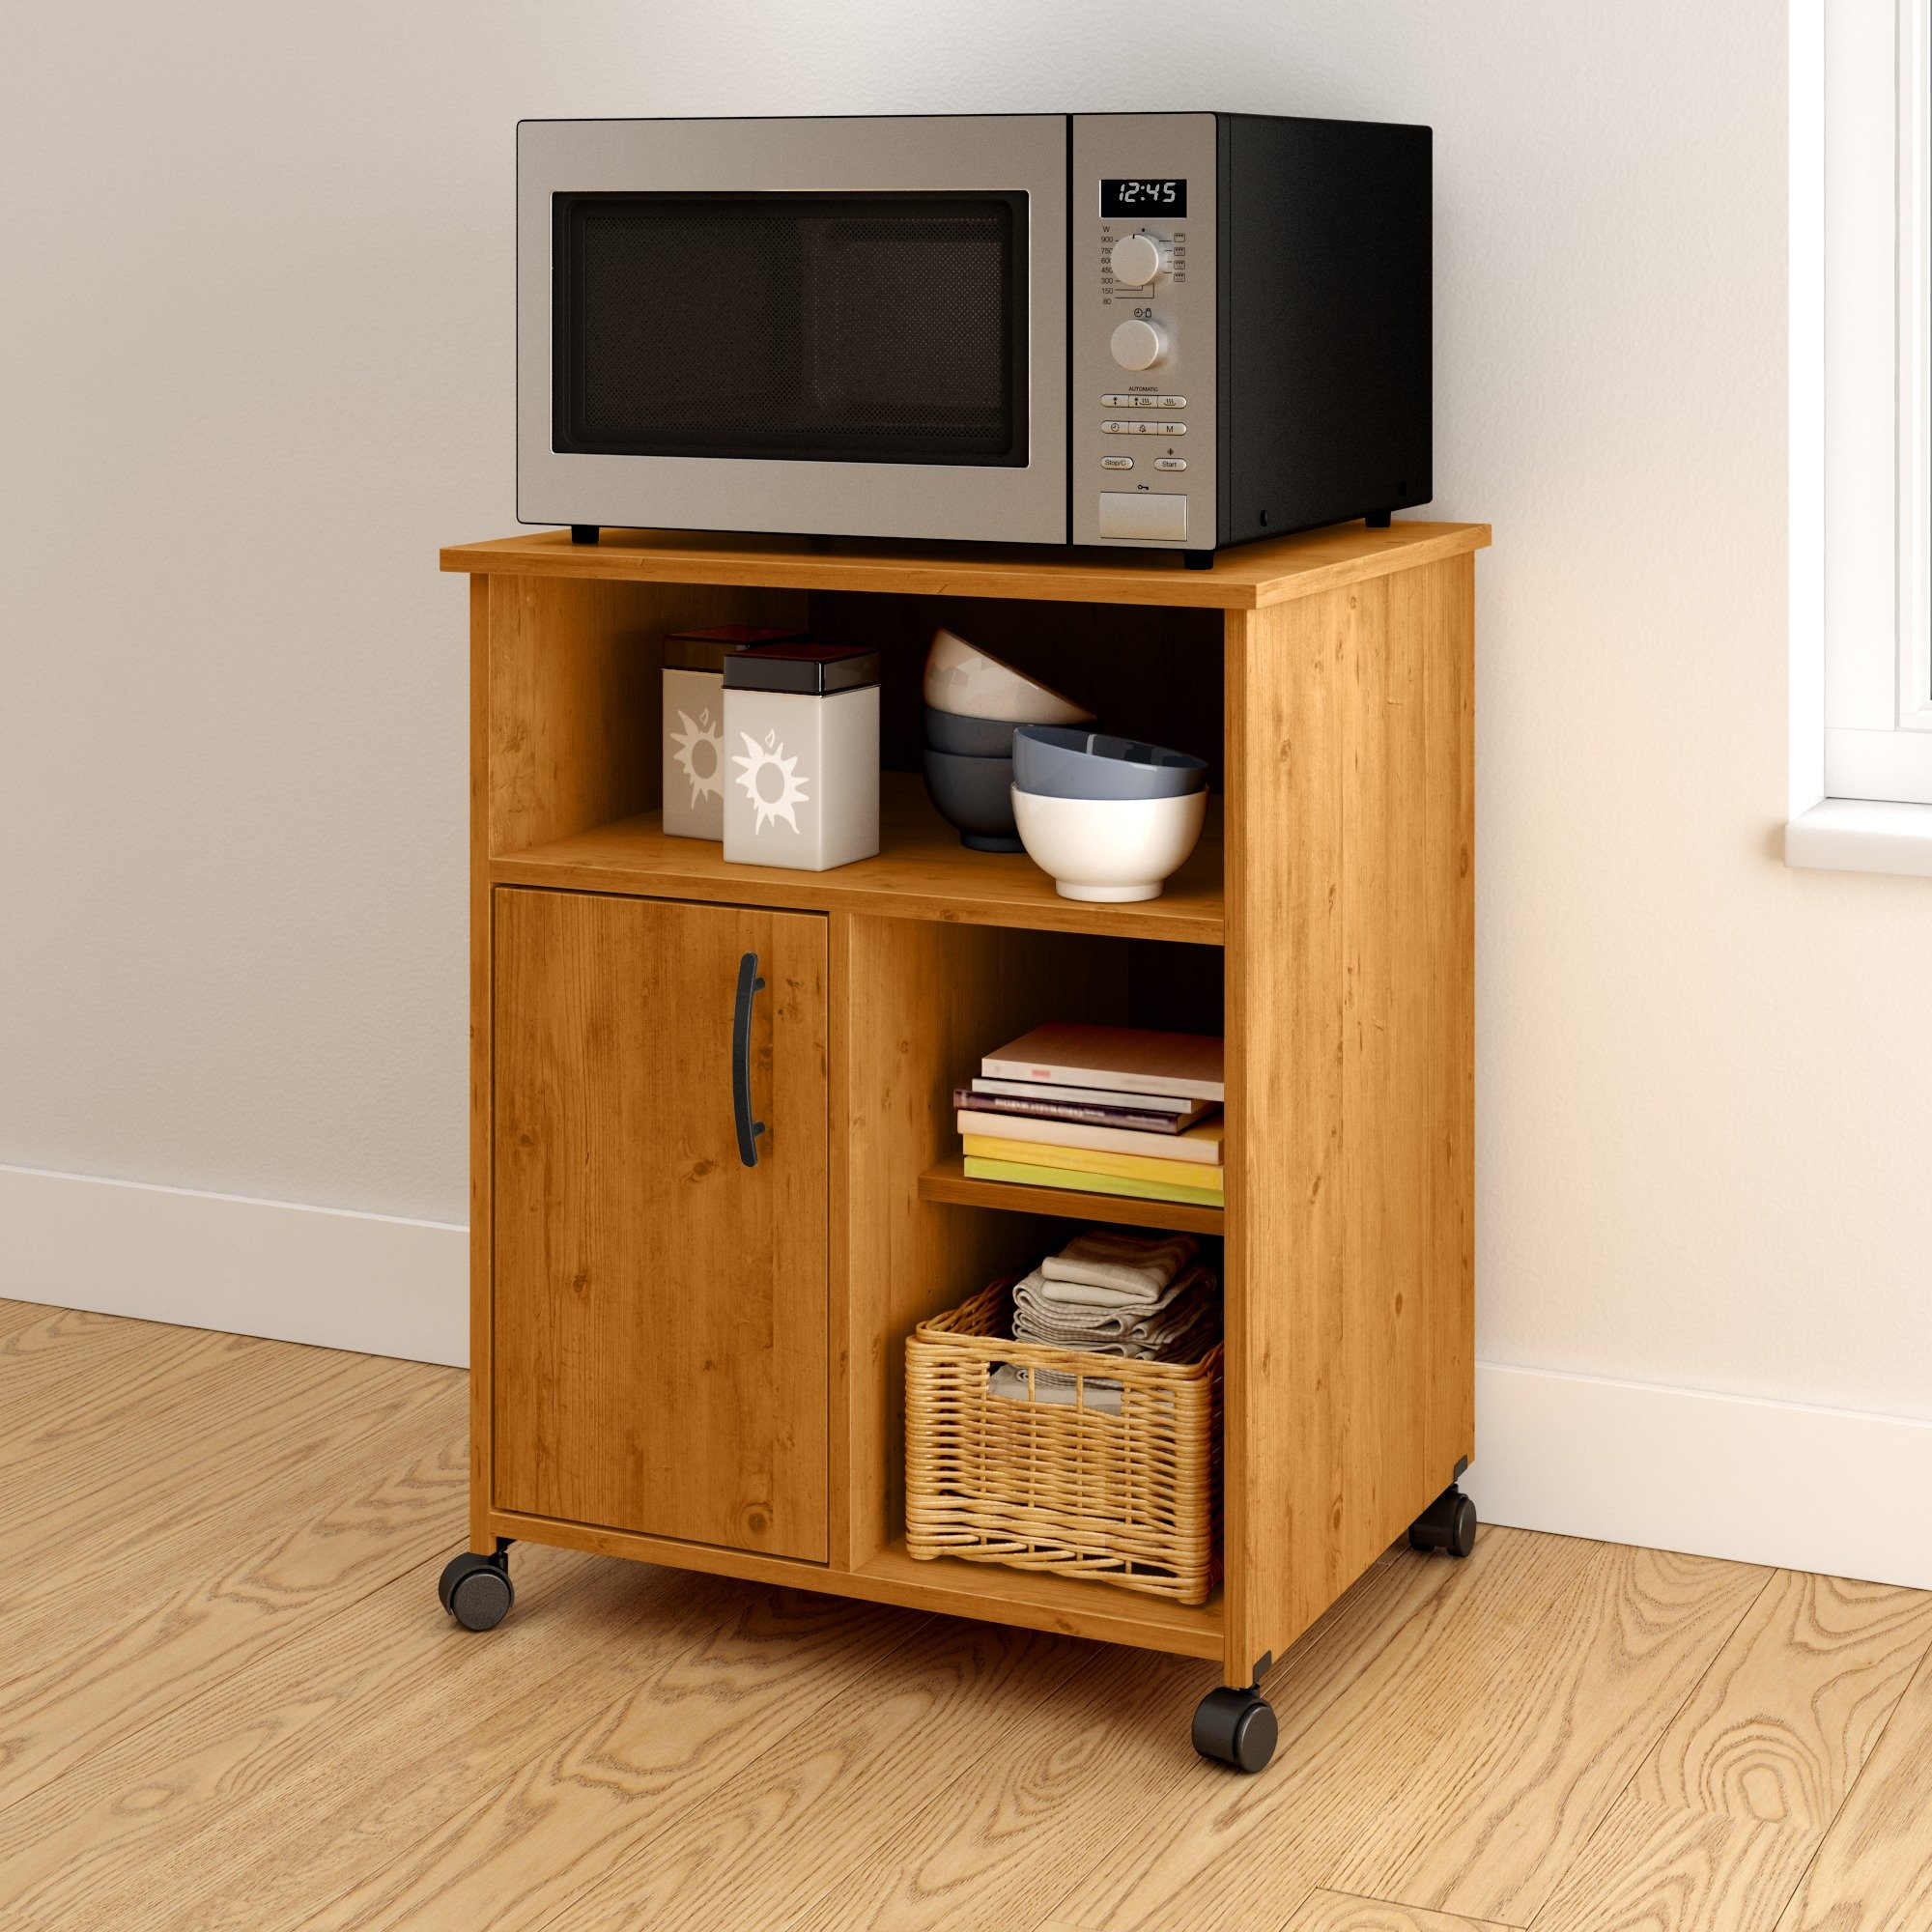 South Shore Axess Microwave Cart with Storage on Wheels, Country Pine by South Shore (Image #2)